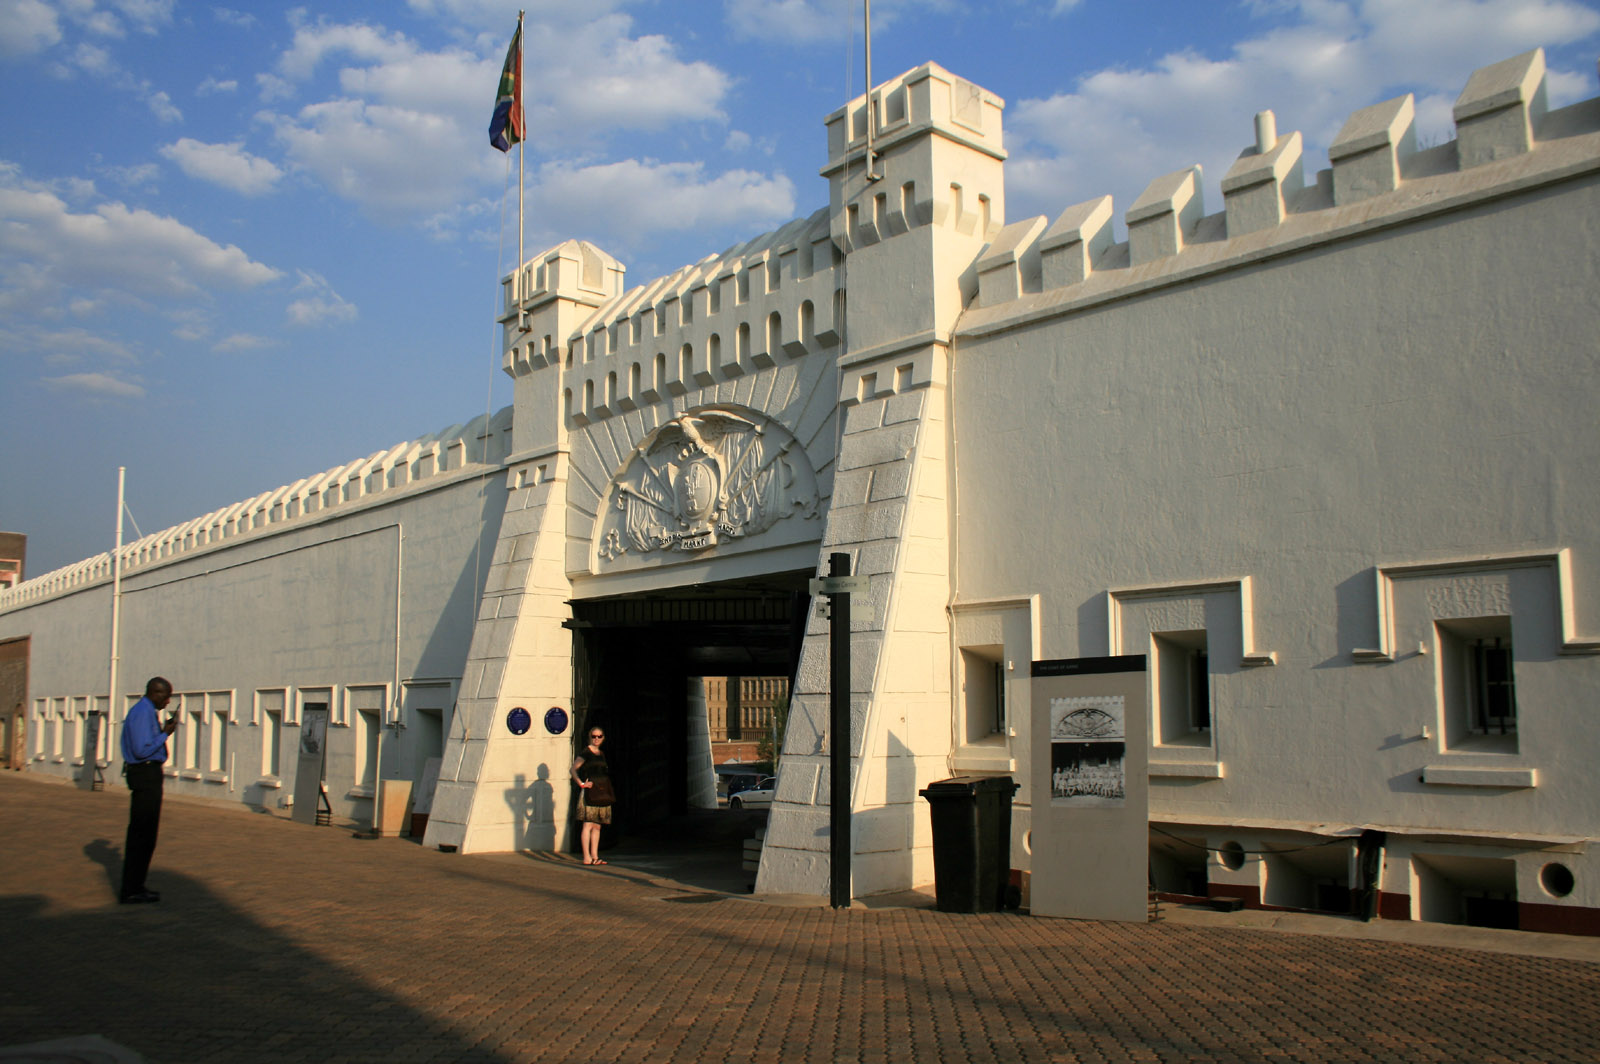 The Constitution Hill accommodates the Constitution Court, which guards the rights of local South Africans.